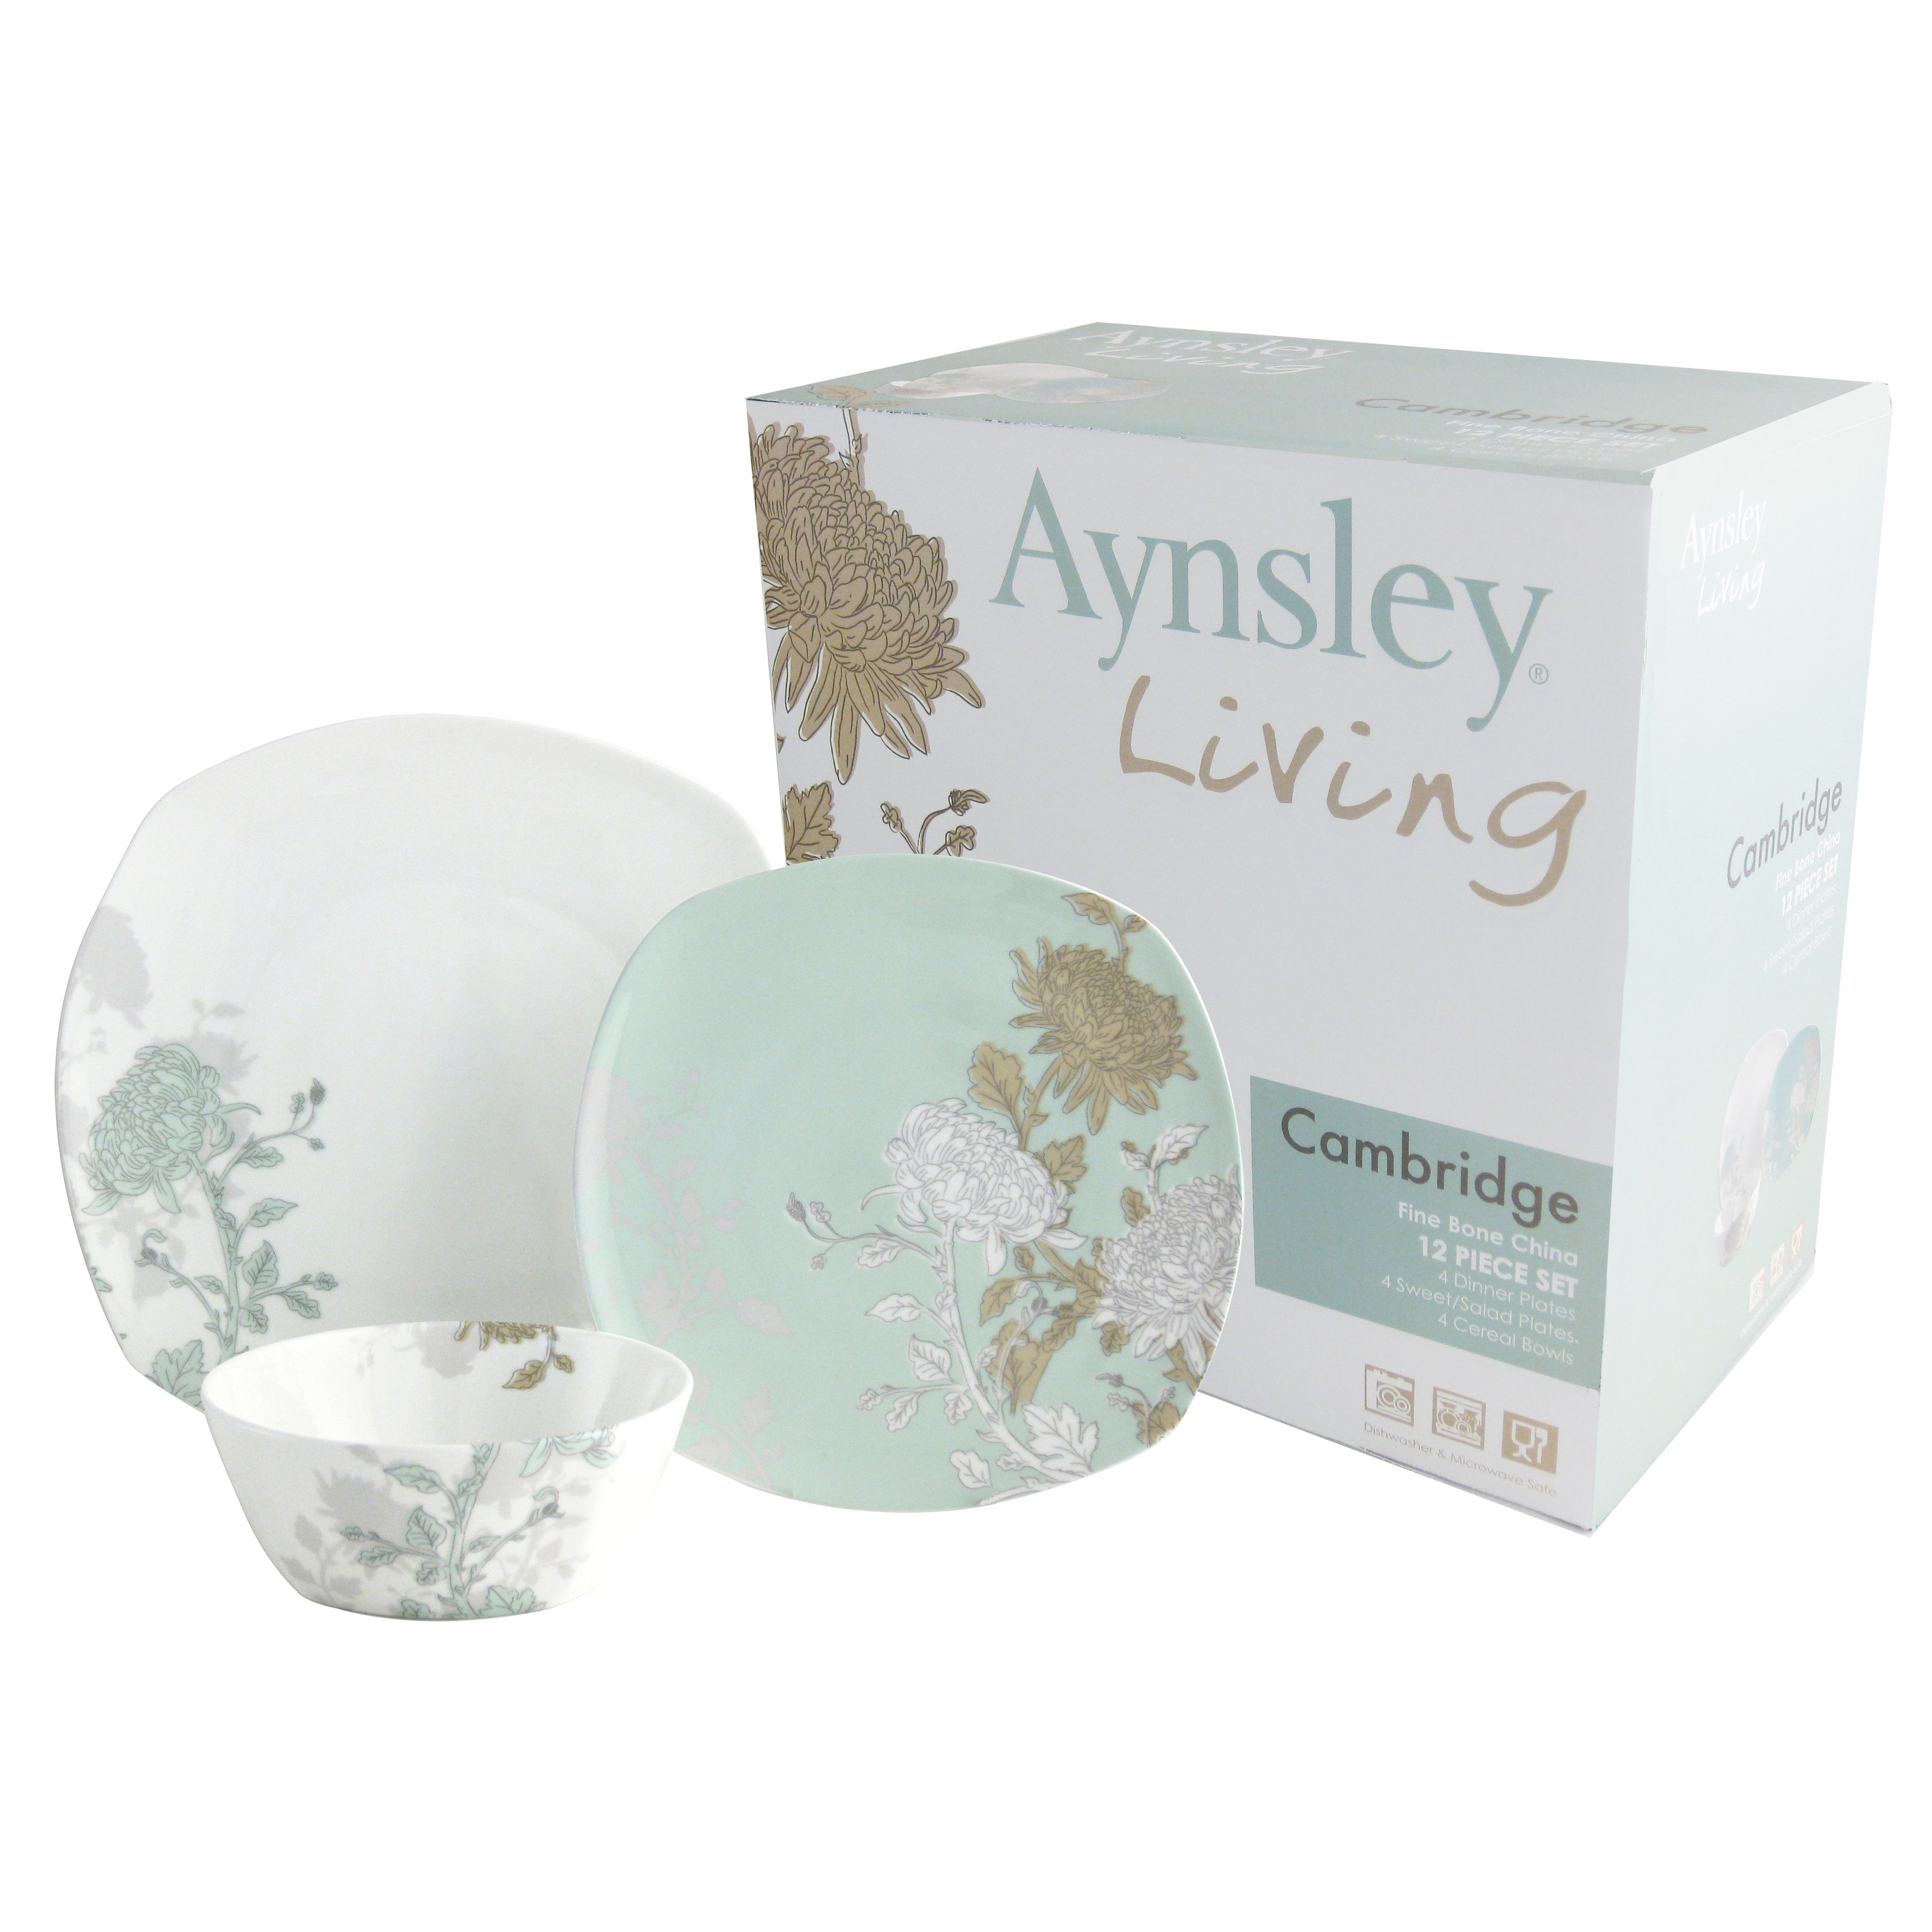 Aynsley China Cambridge 12 Piece Porcelain Dinnerware Set  sc 1 st  Pinterest : porcelain dinnerware sets for 12 - pezcame.com